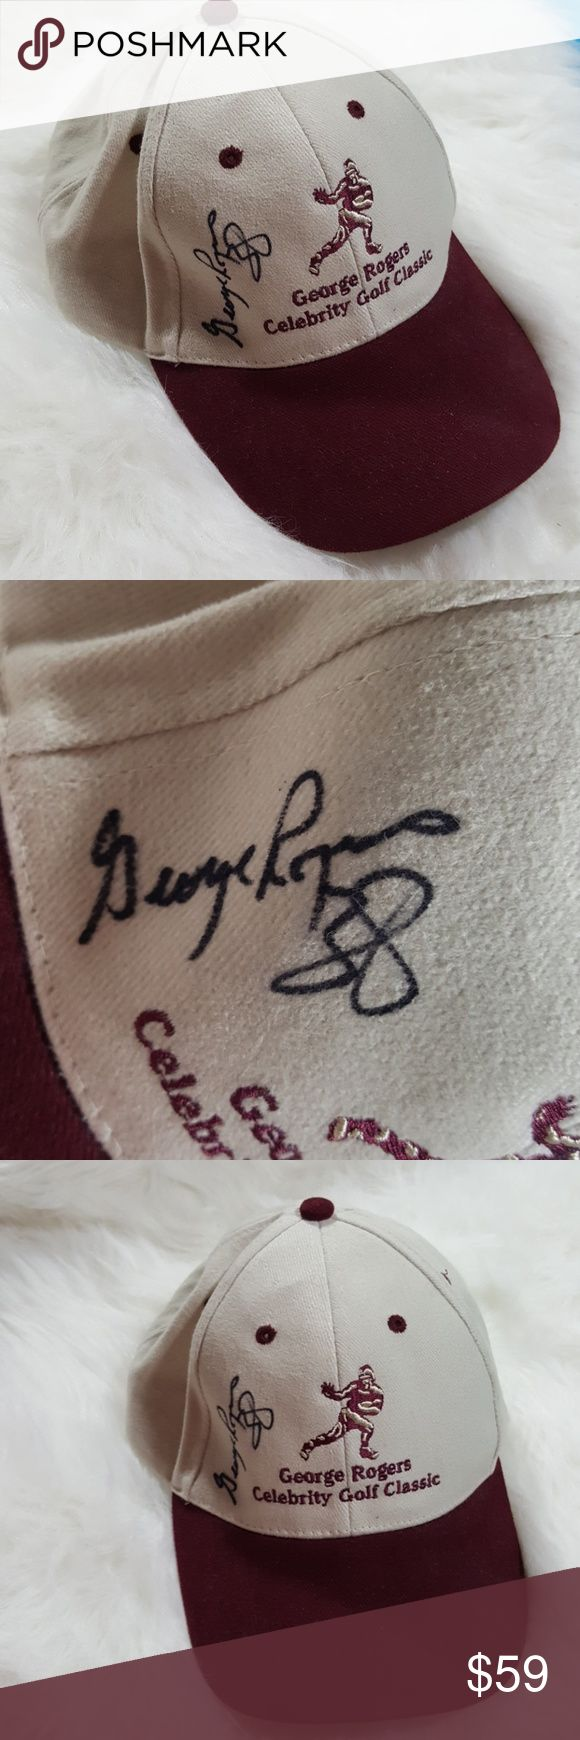 Dad cap autograph by George Rogers That happened good condition autographed by George Rogers famous football player for USC george rogers Accessories Hats